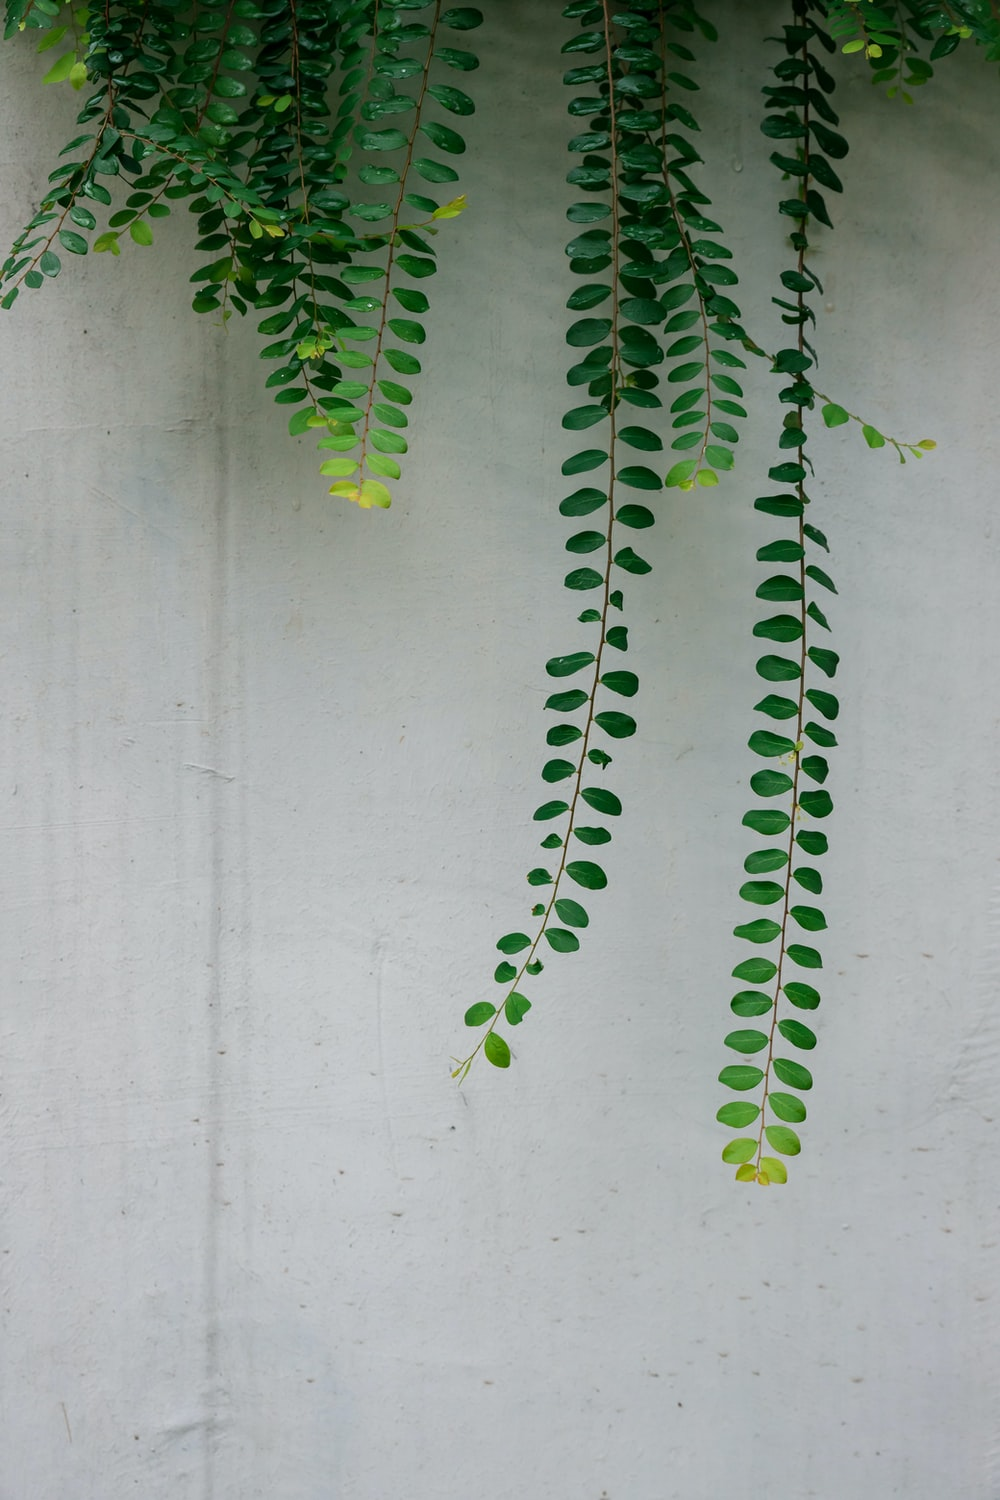 green-leafed plant on wall